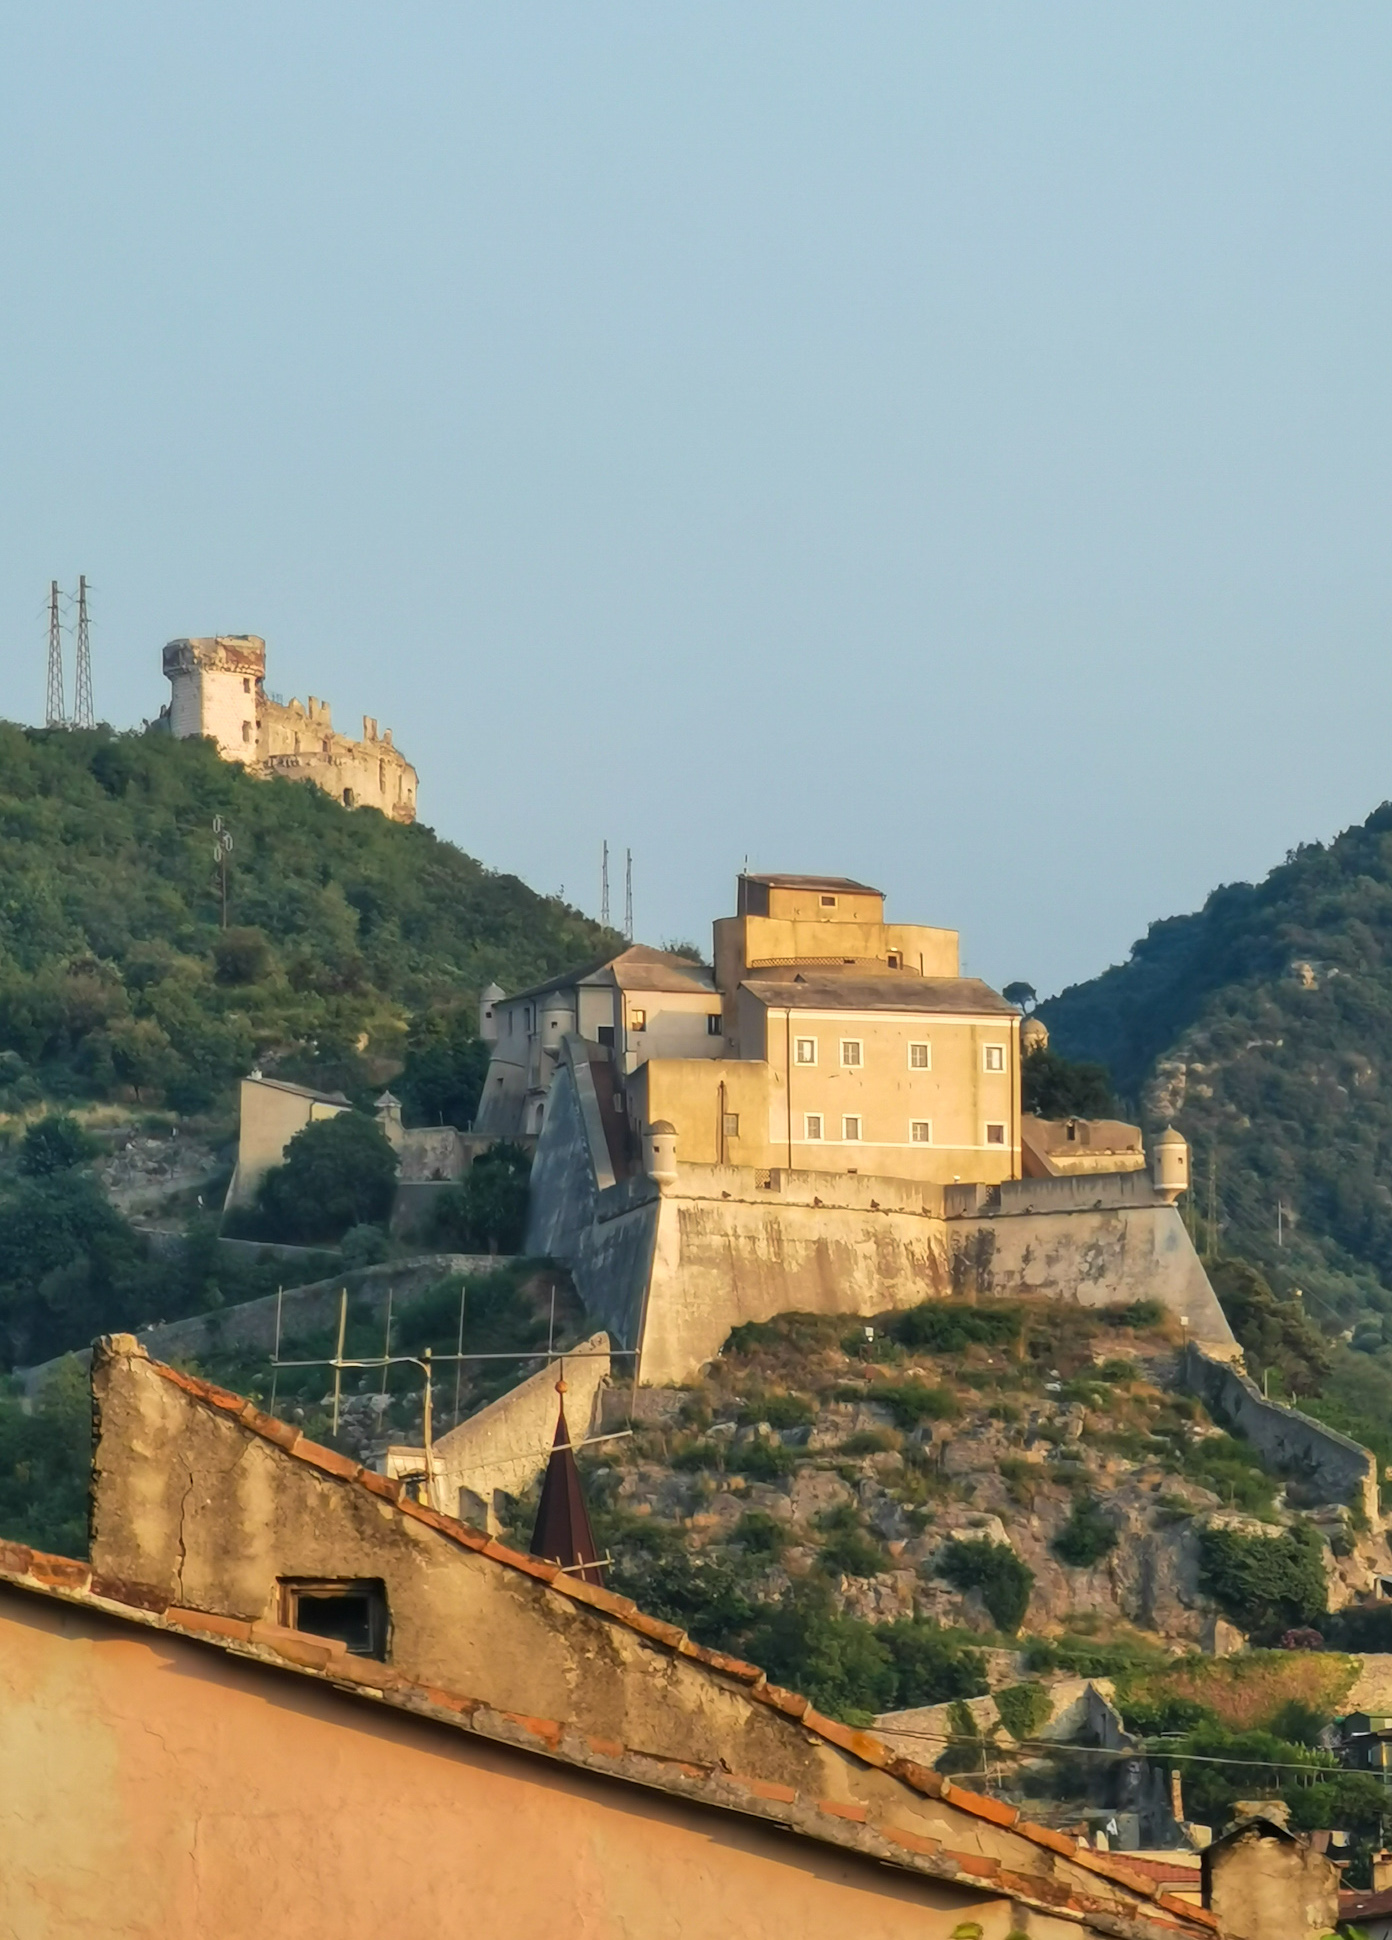 The Fort of San Giovanni in the medieval hamlet of Finalborgo in Liguria